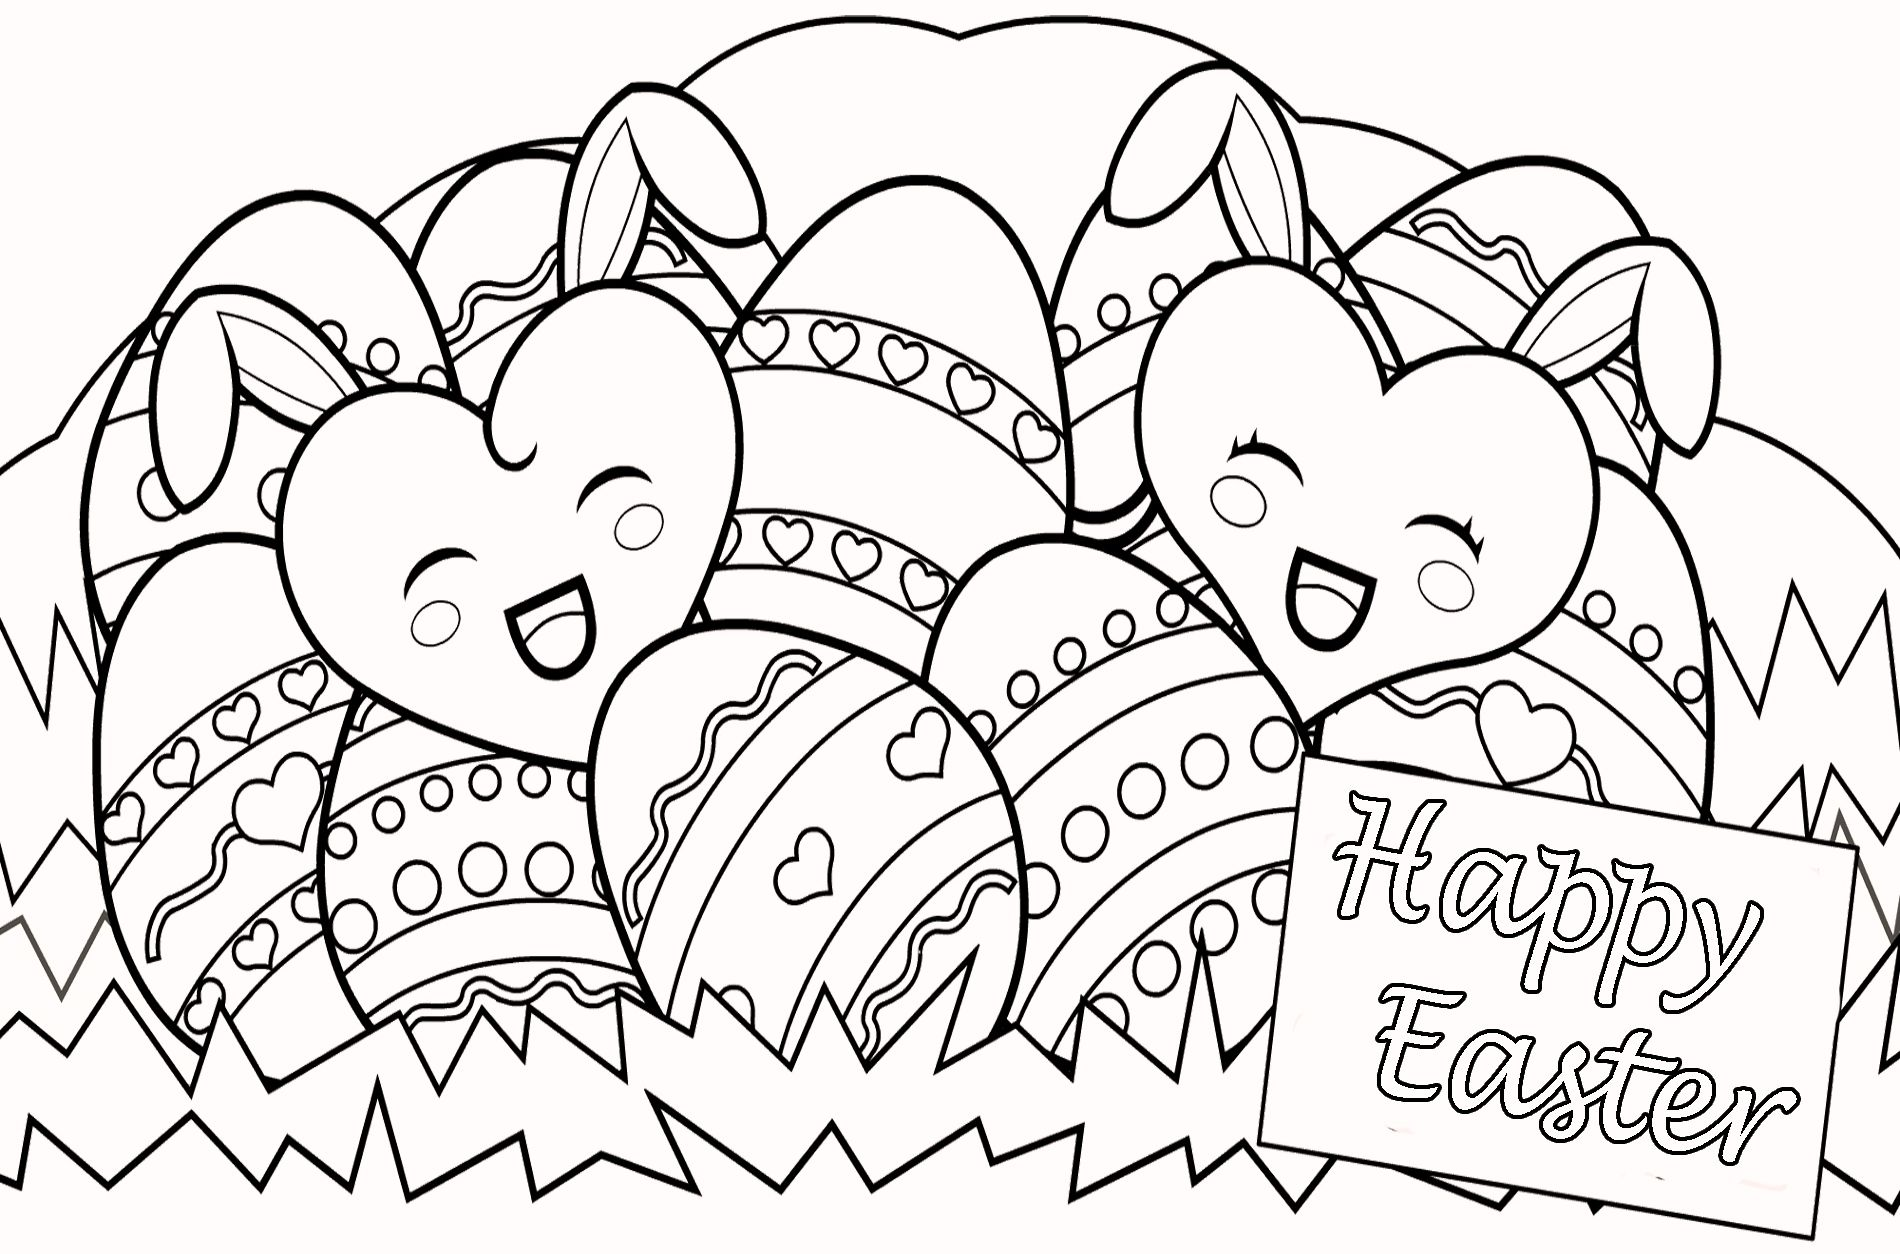 Pin by Tri Putri on Religious Easter Coloring Pages Pinterest